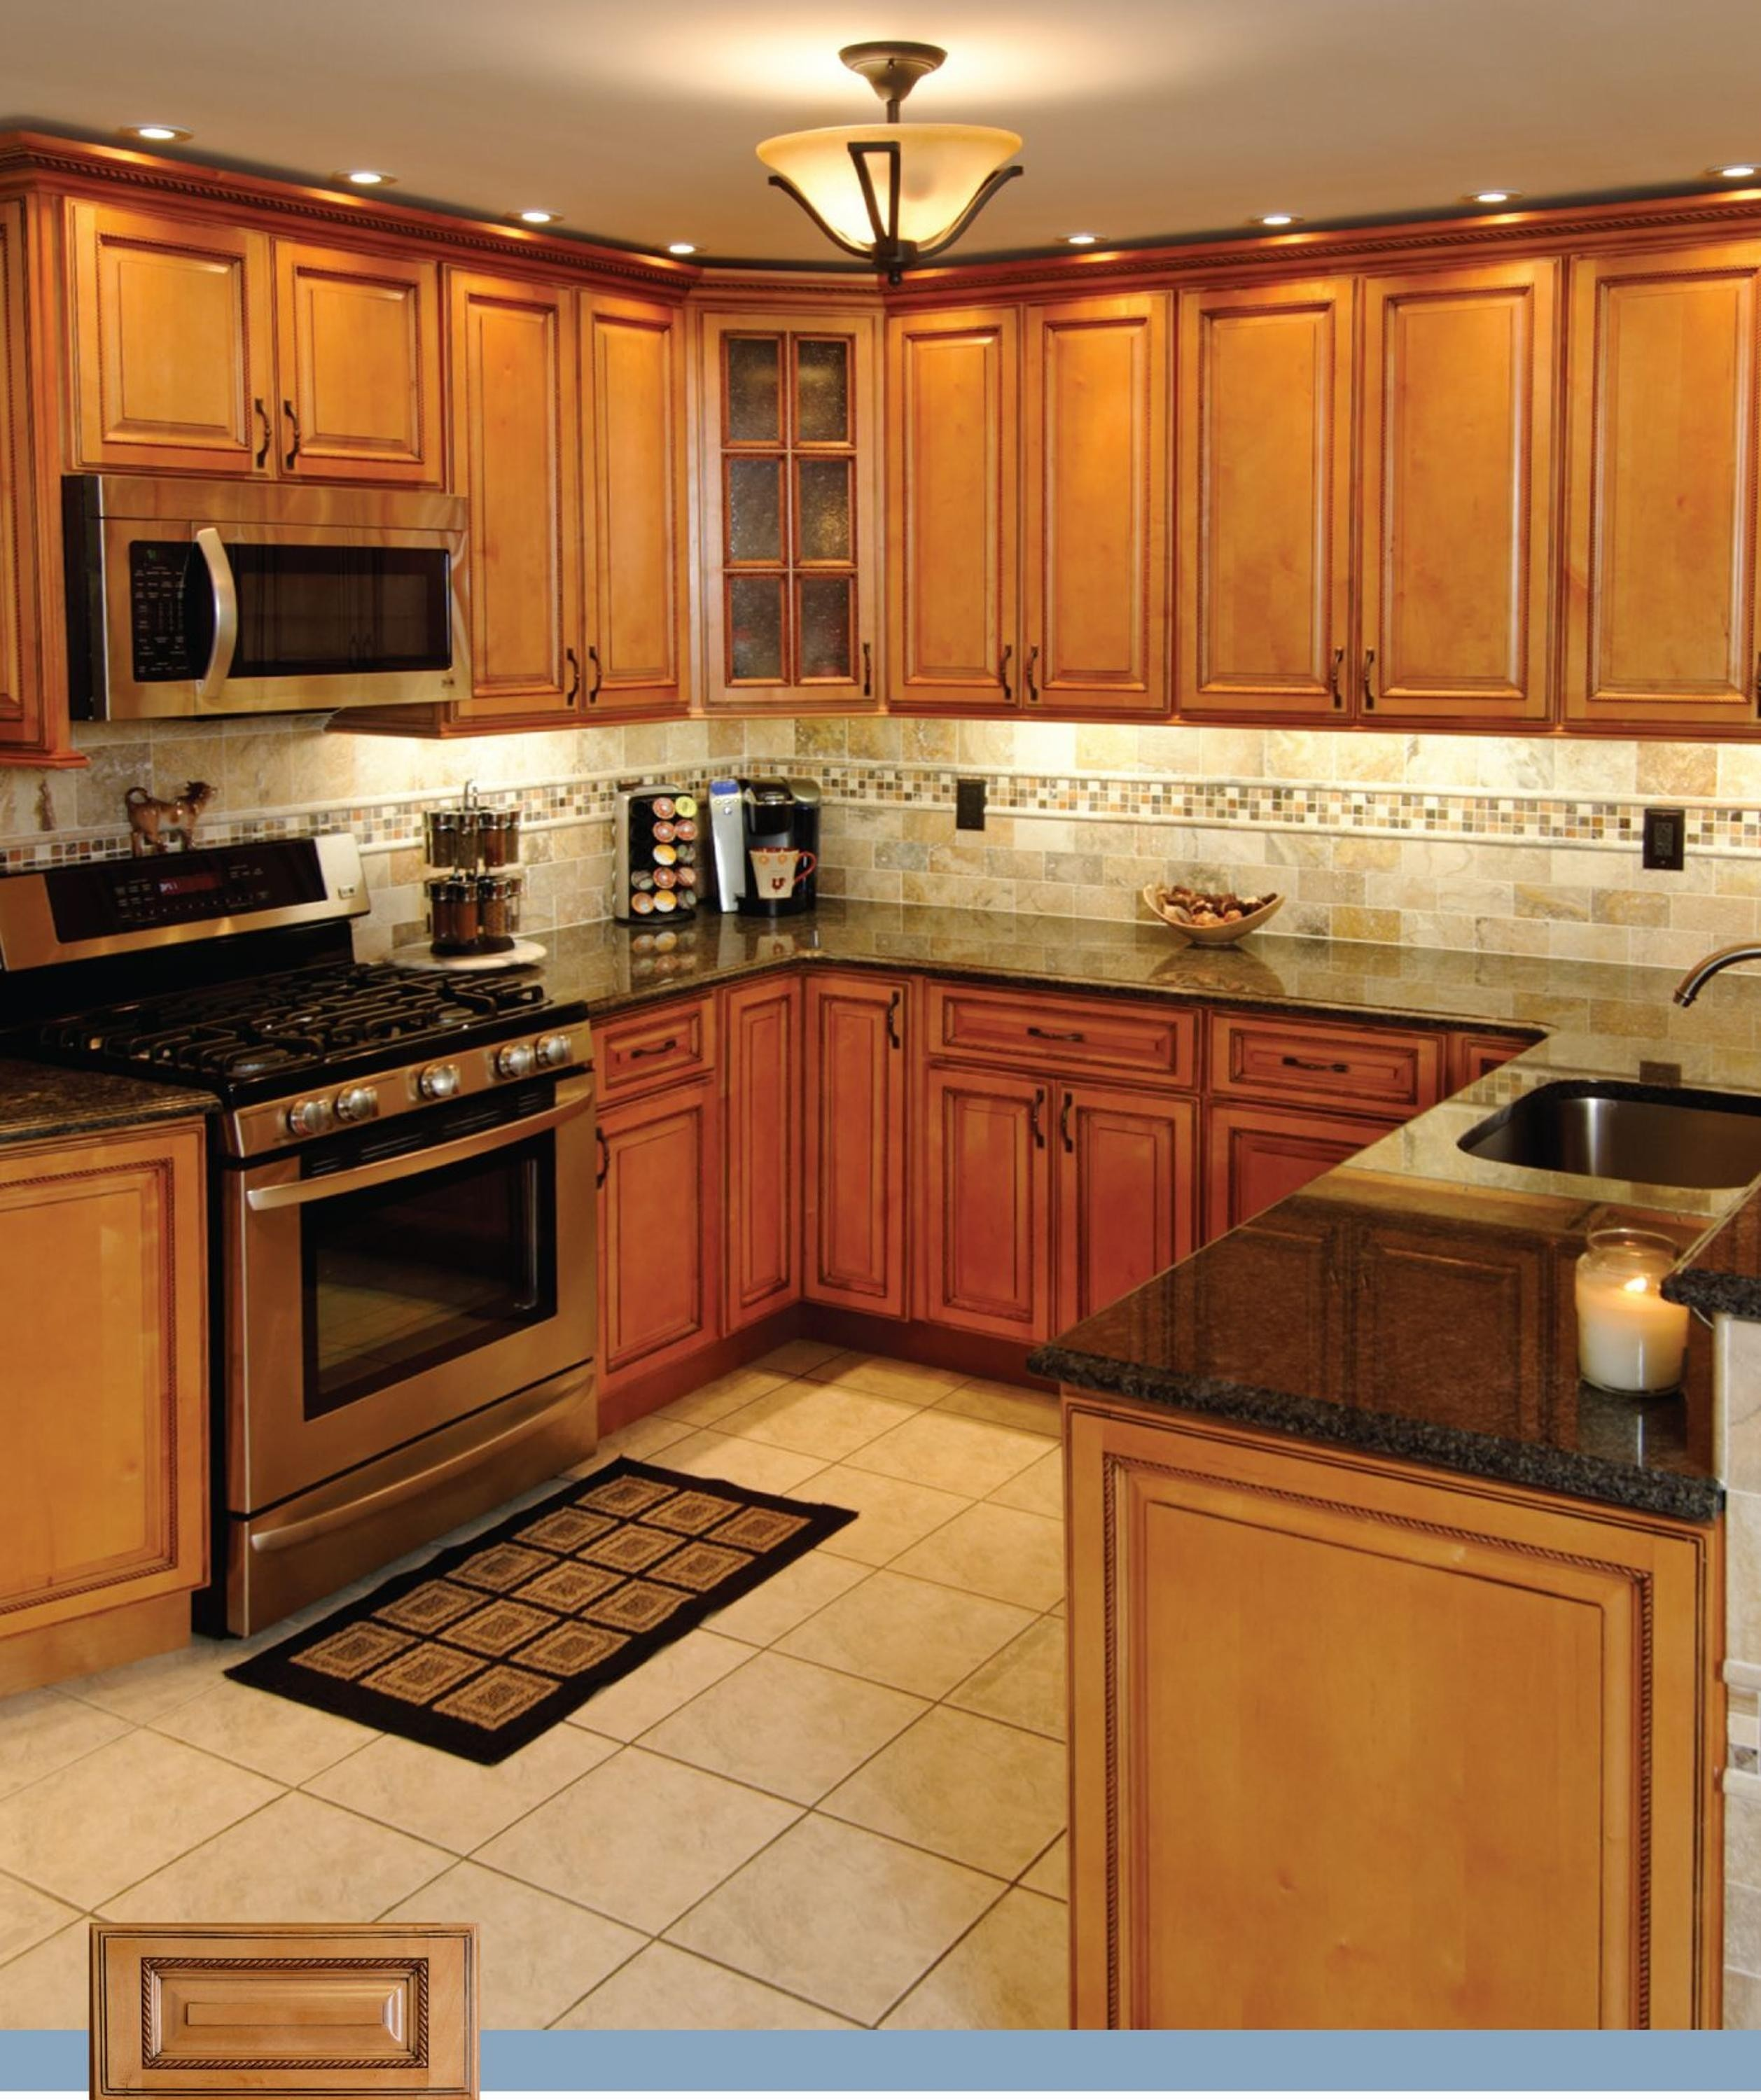 Maple Cabinets - Foter on What Color Backsplash With Maple Cabinets  id=13631